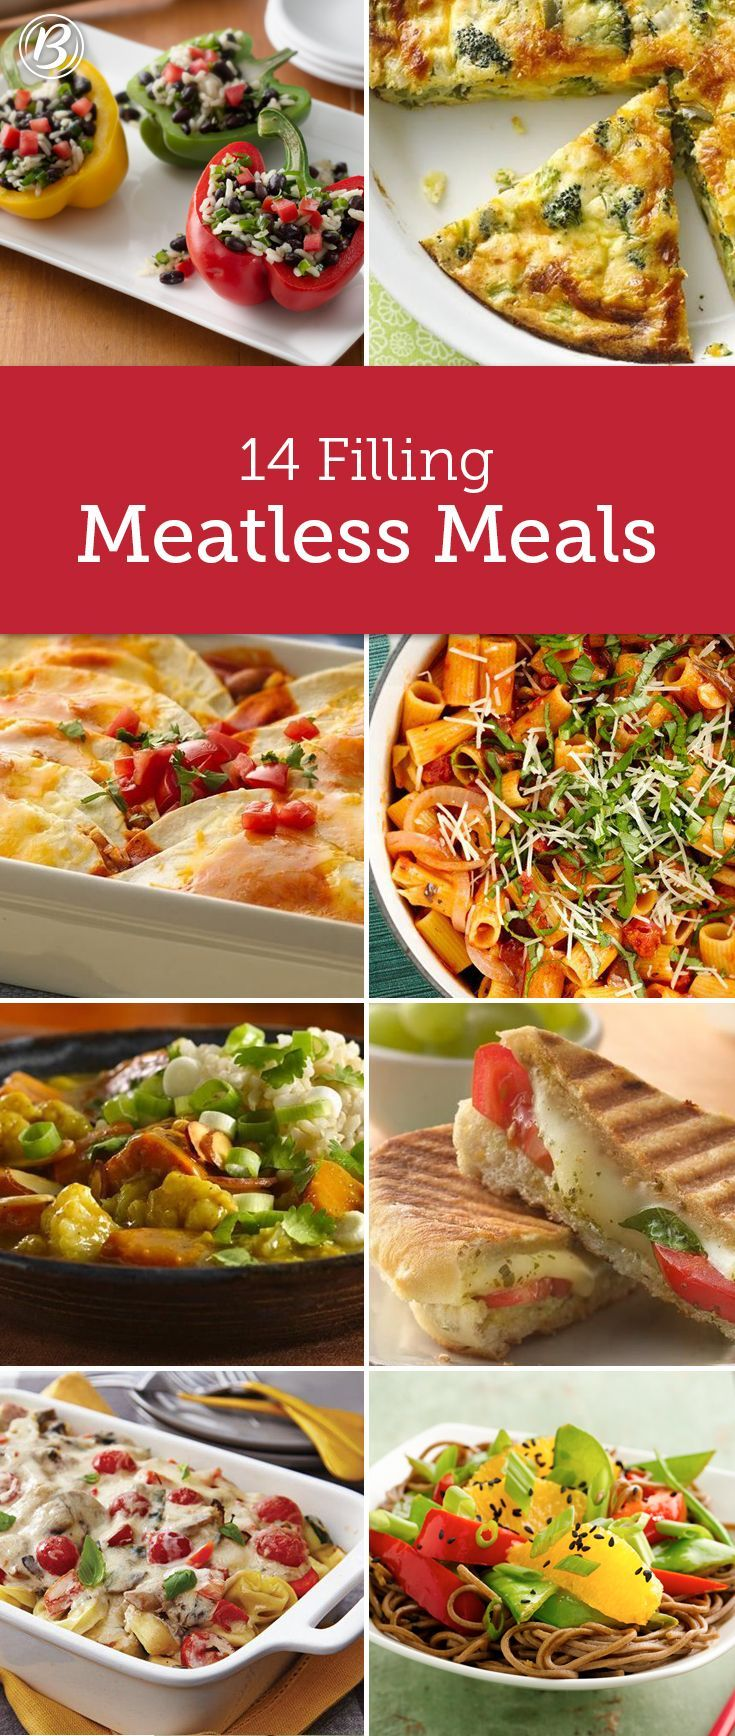 14 Filling Meatless Meal Ideas Meat Free Recipes Meals Without Meat Vegetarian Vegan Recipes